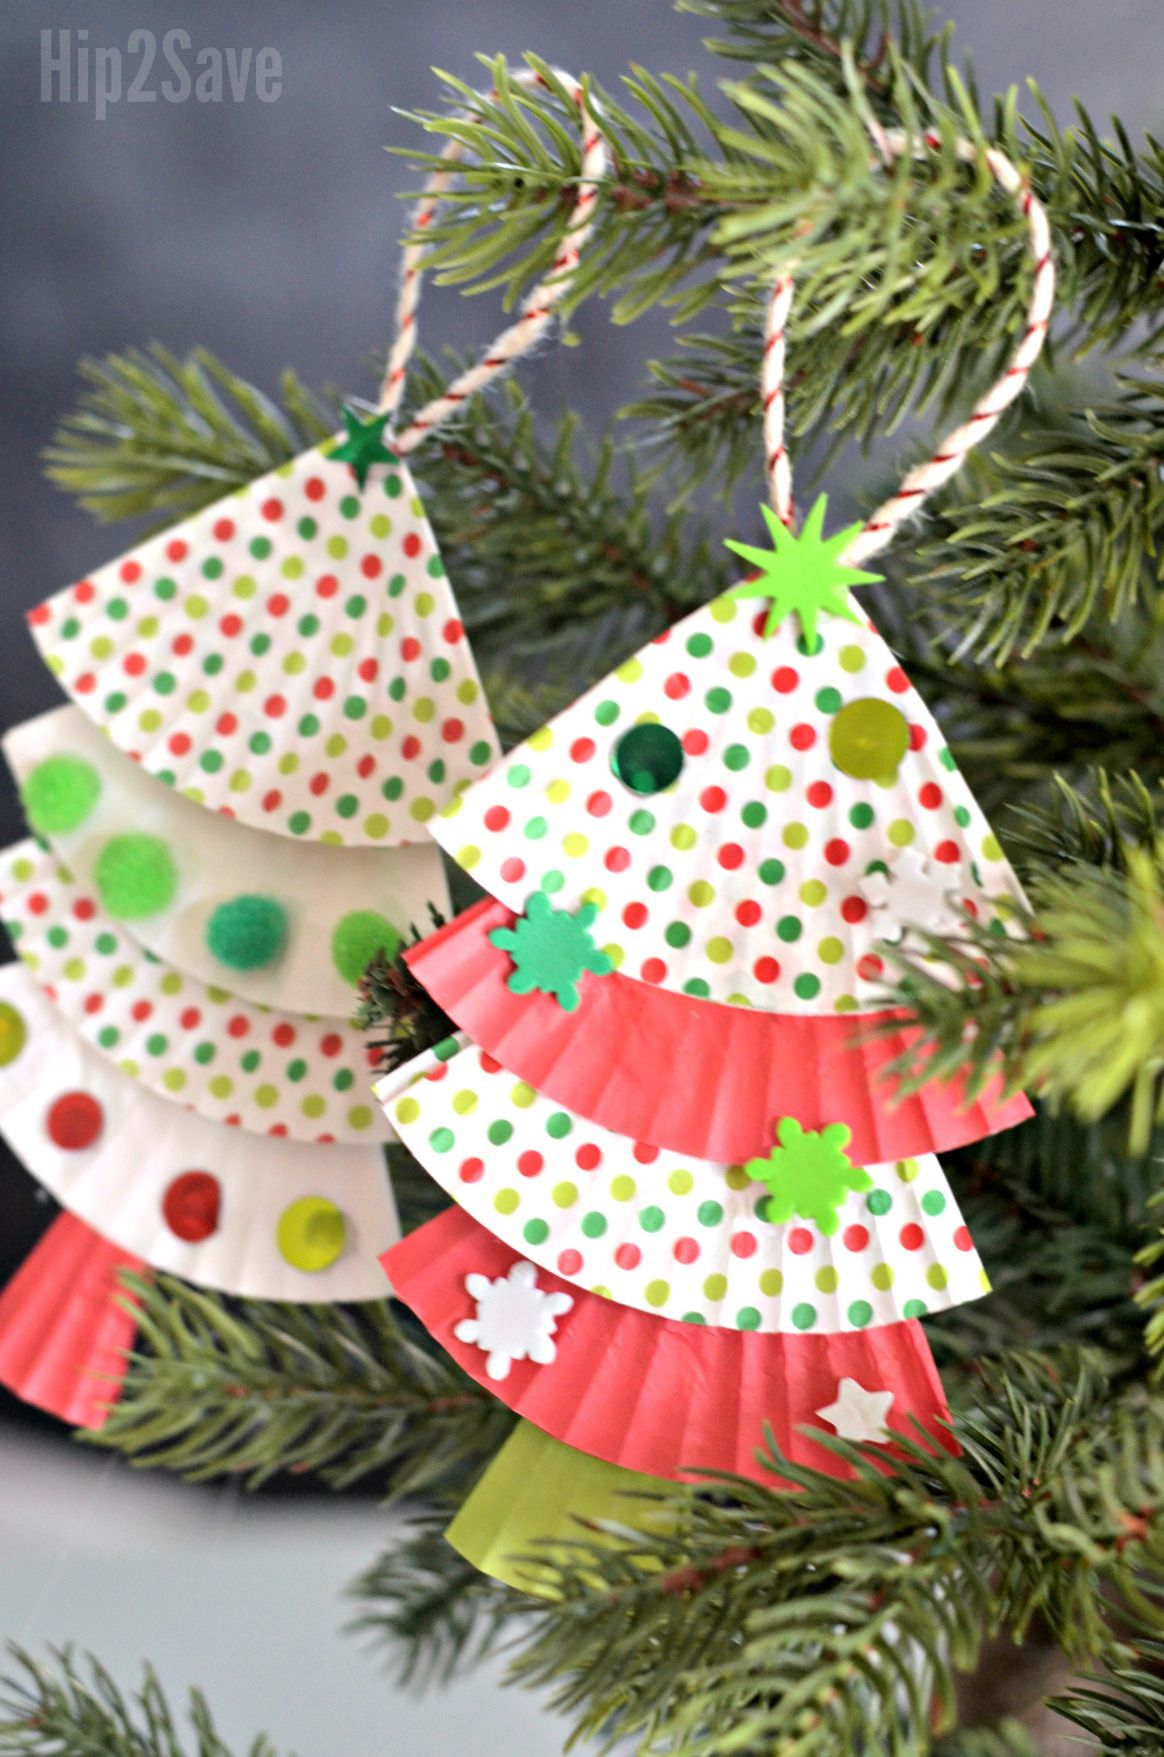 Here S How You Can Easily Turn Cupcake Liners Into The Cutest Christmas Tree Orna Christmas Angel Crafts Kids Christmas Ornaments Preschool Christmas Ornaments